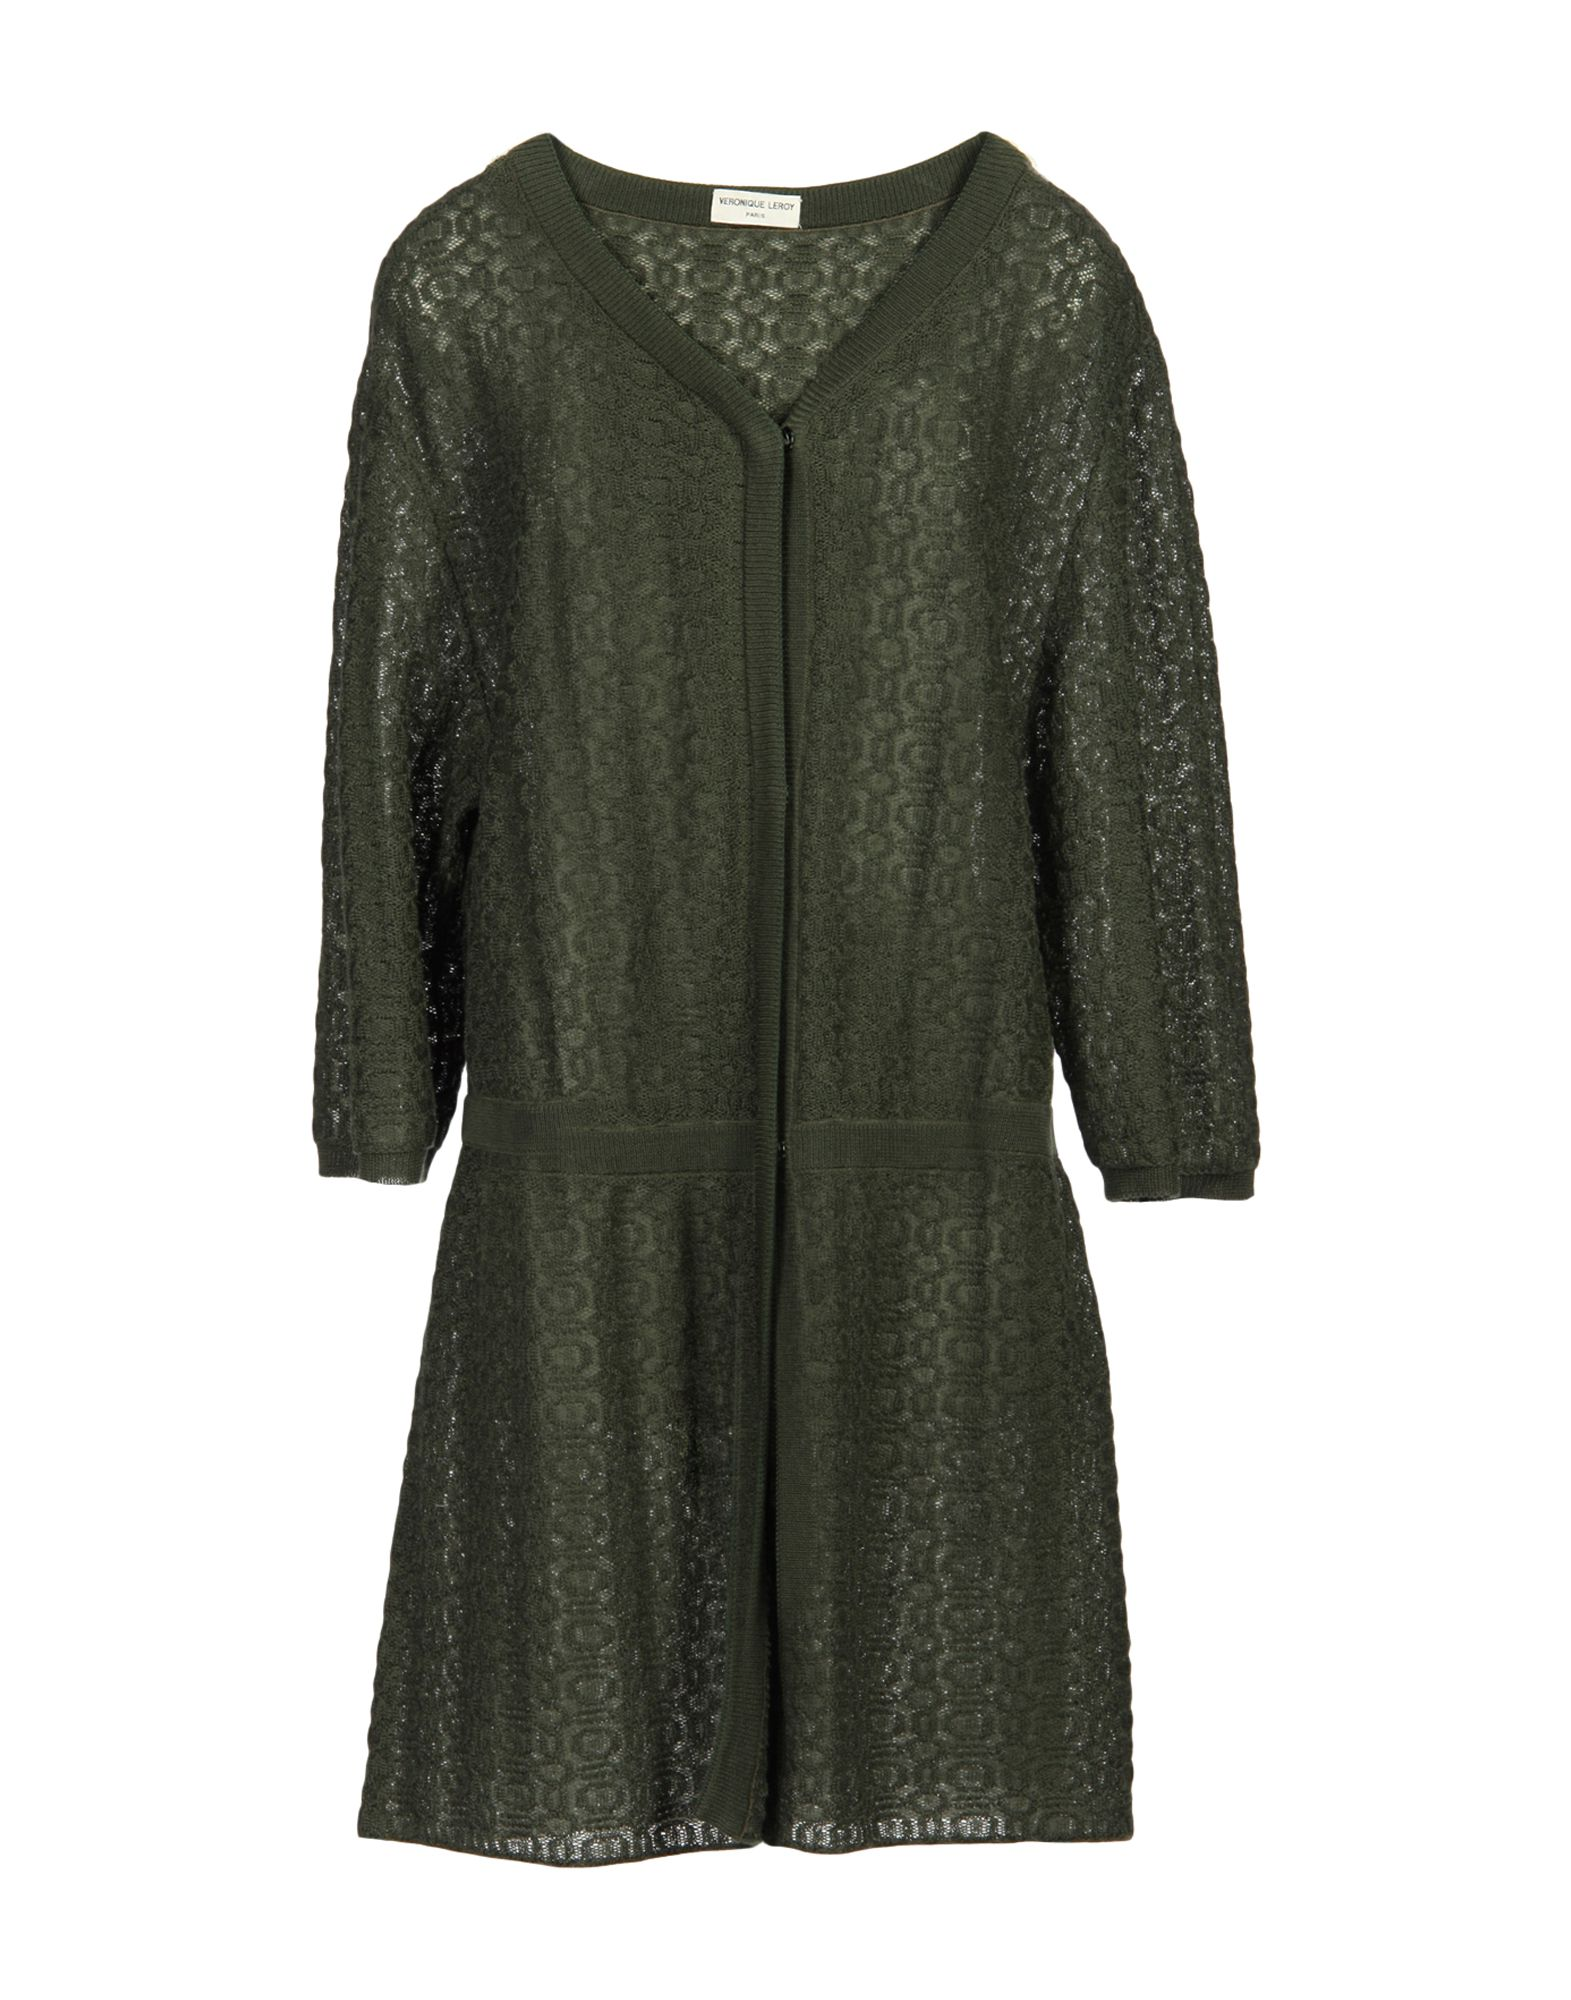 VERONIQUE LEROY Cardigans in Military Green